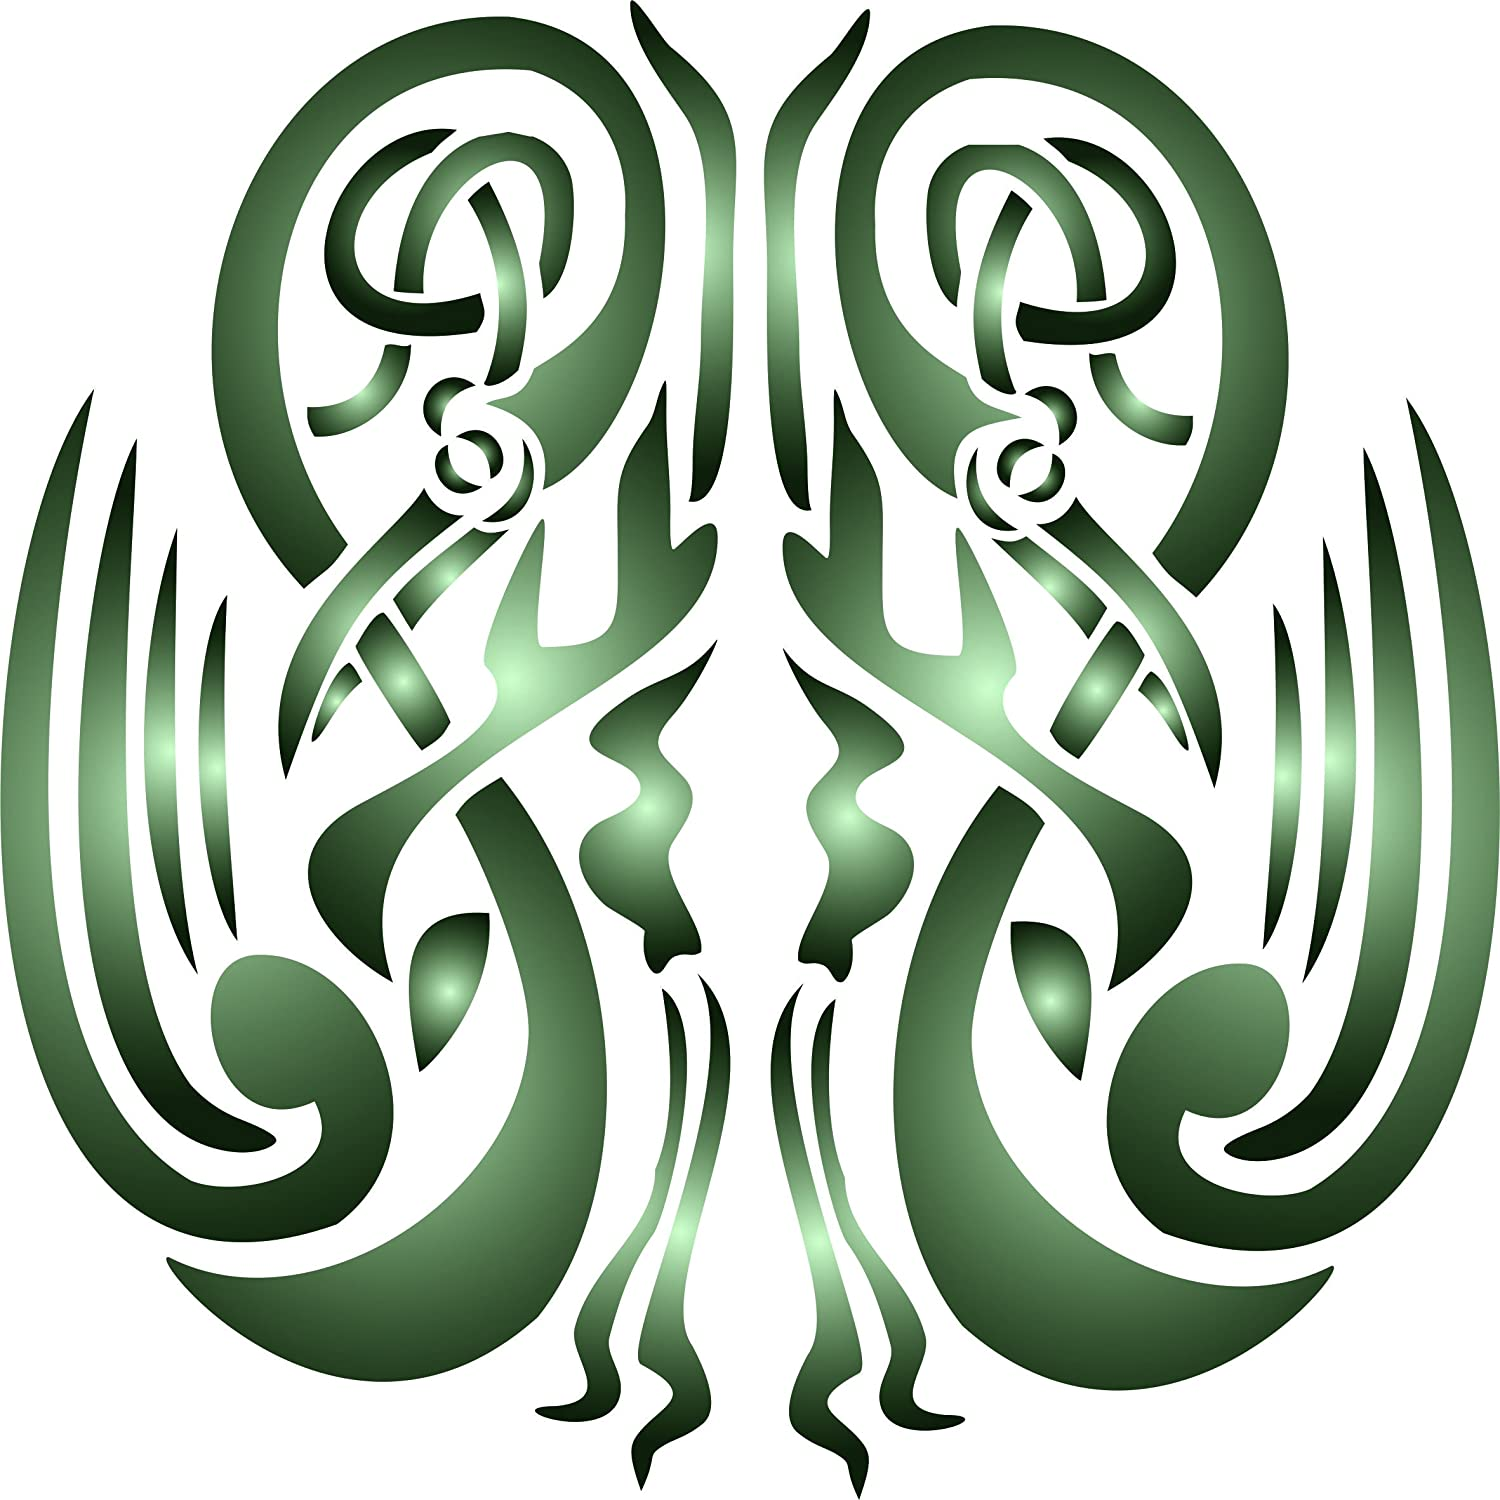 """Celtic Stencil - (size 10.5""""w x 10.5""""h) Reusable Wall Stencils for Painting - Best Quality Wall Art Décor Ideas - Use on Walls, Floors, Fabrics, Glass, Wood, Terracotta, and More…"""